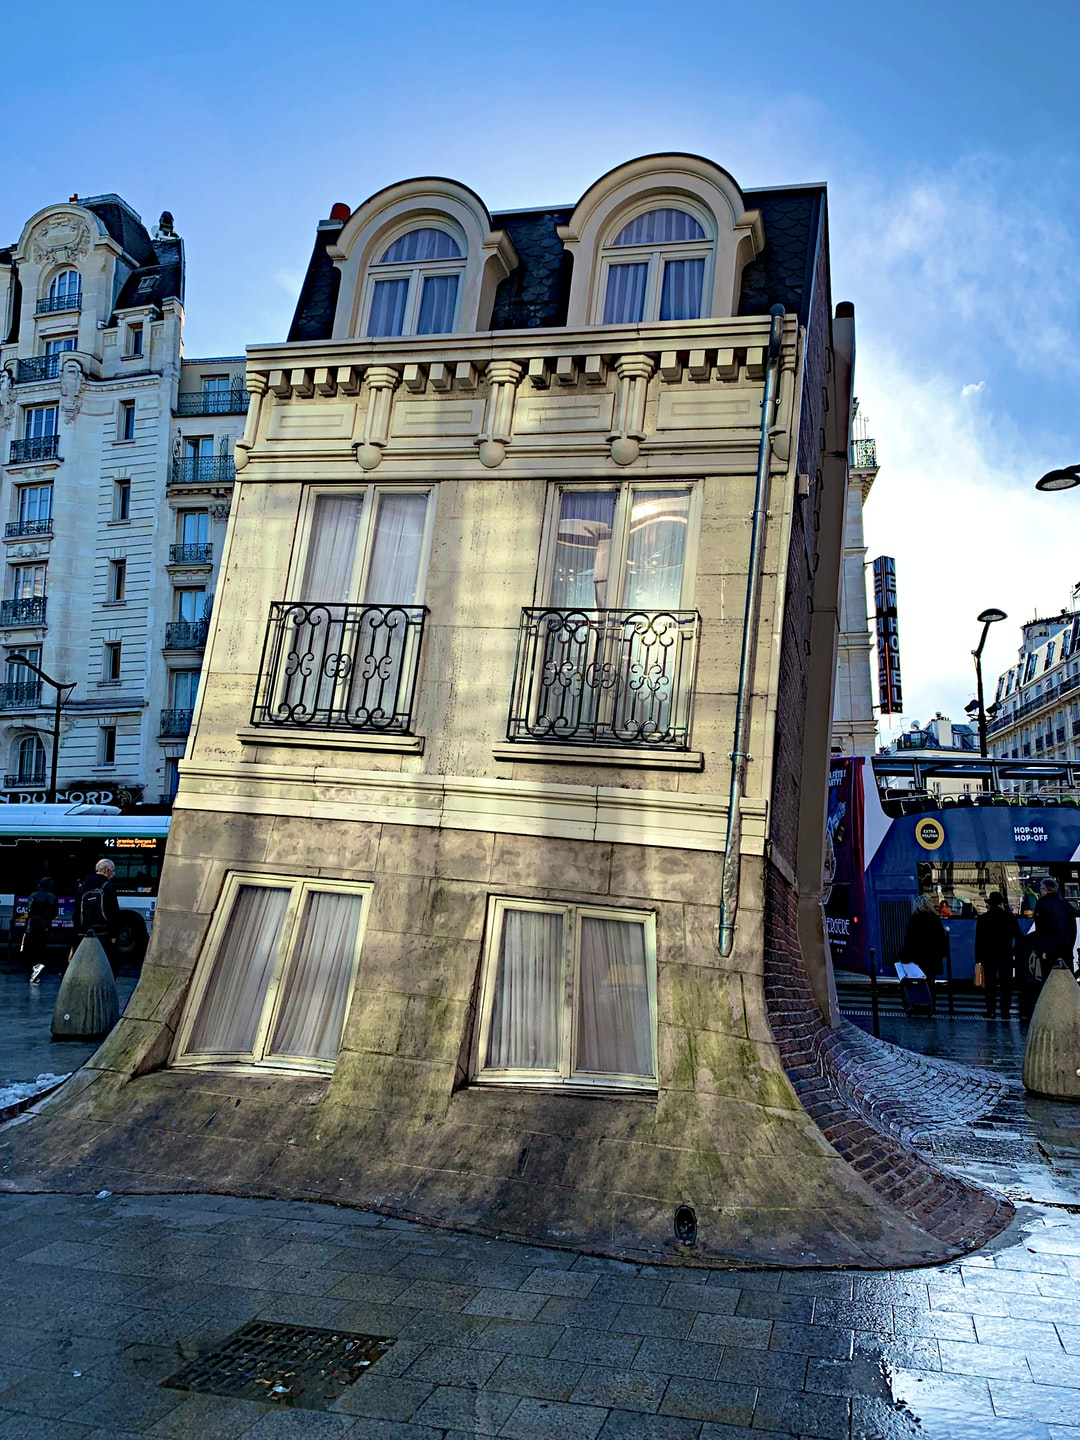 The Melting House, installation by Leandro Erlich, Gare Du Nord, Paris